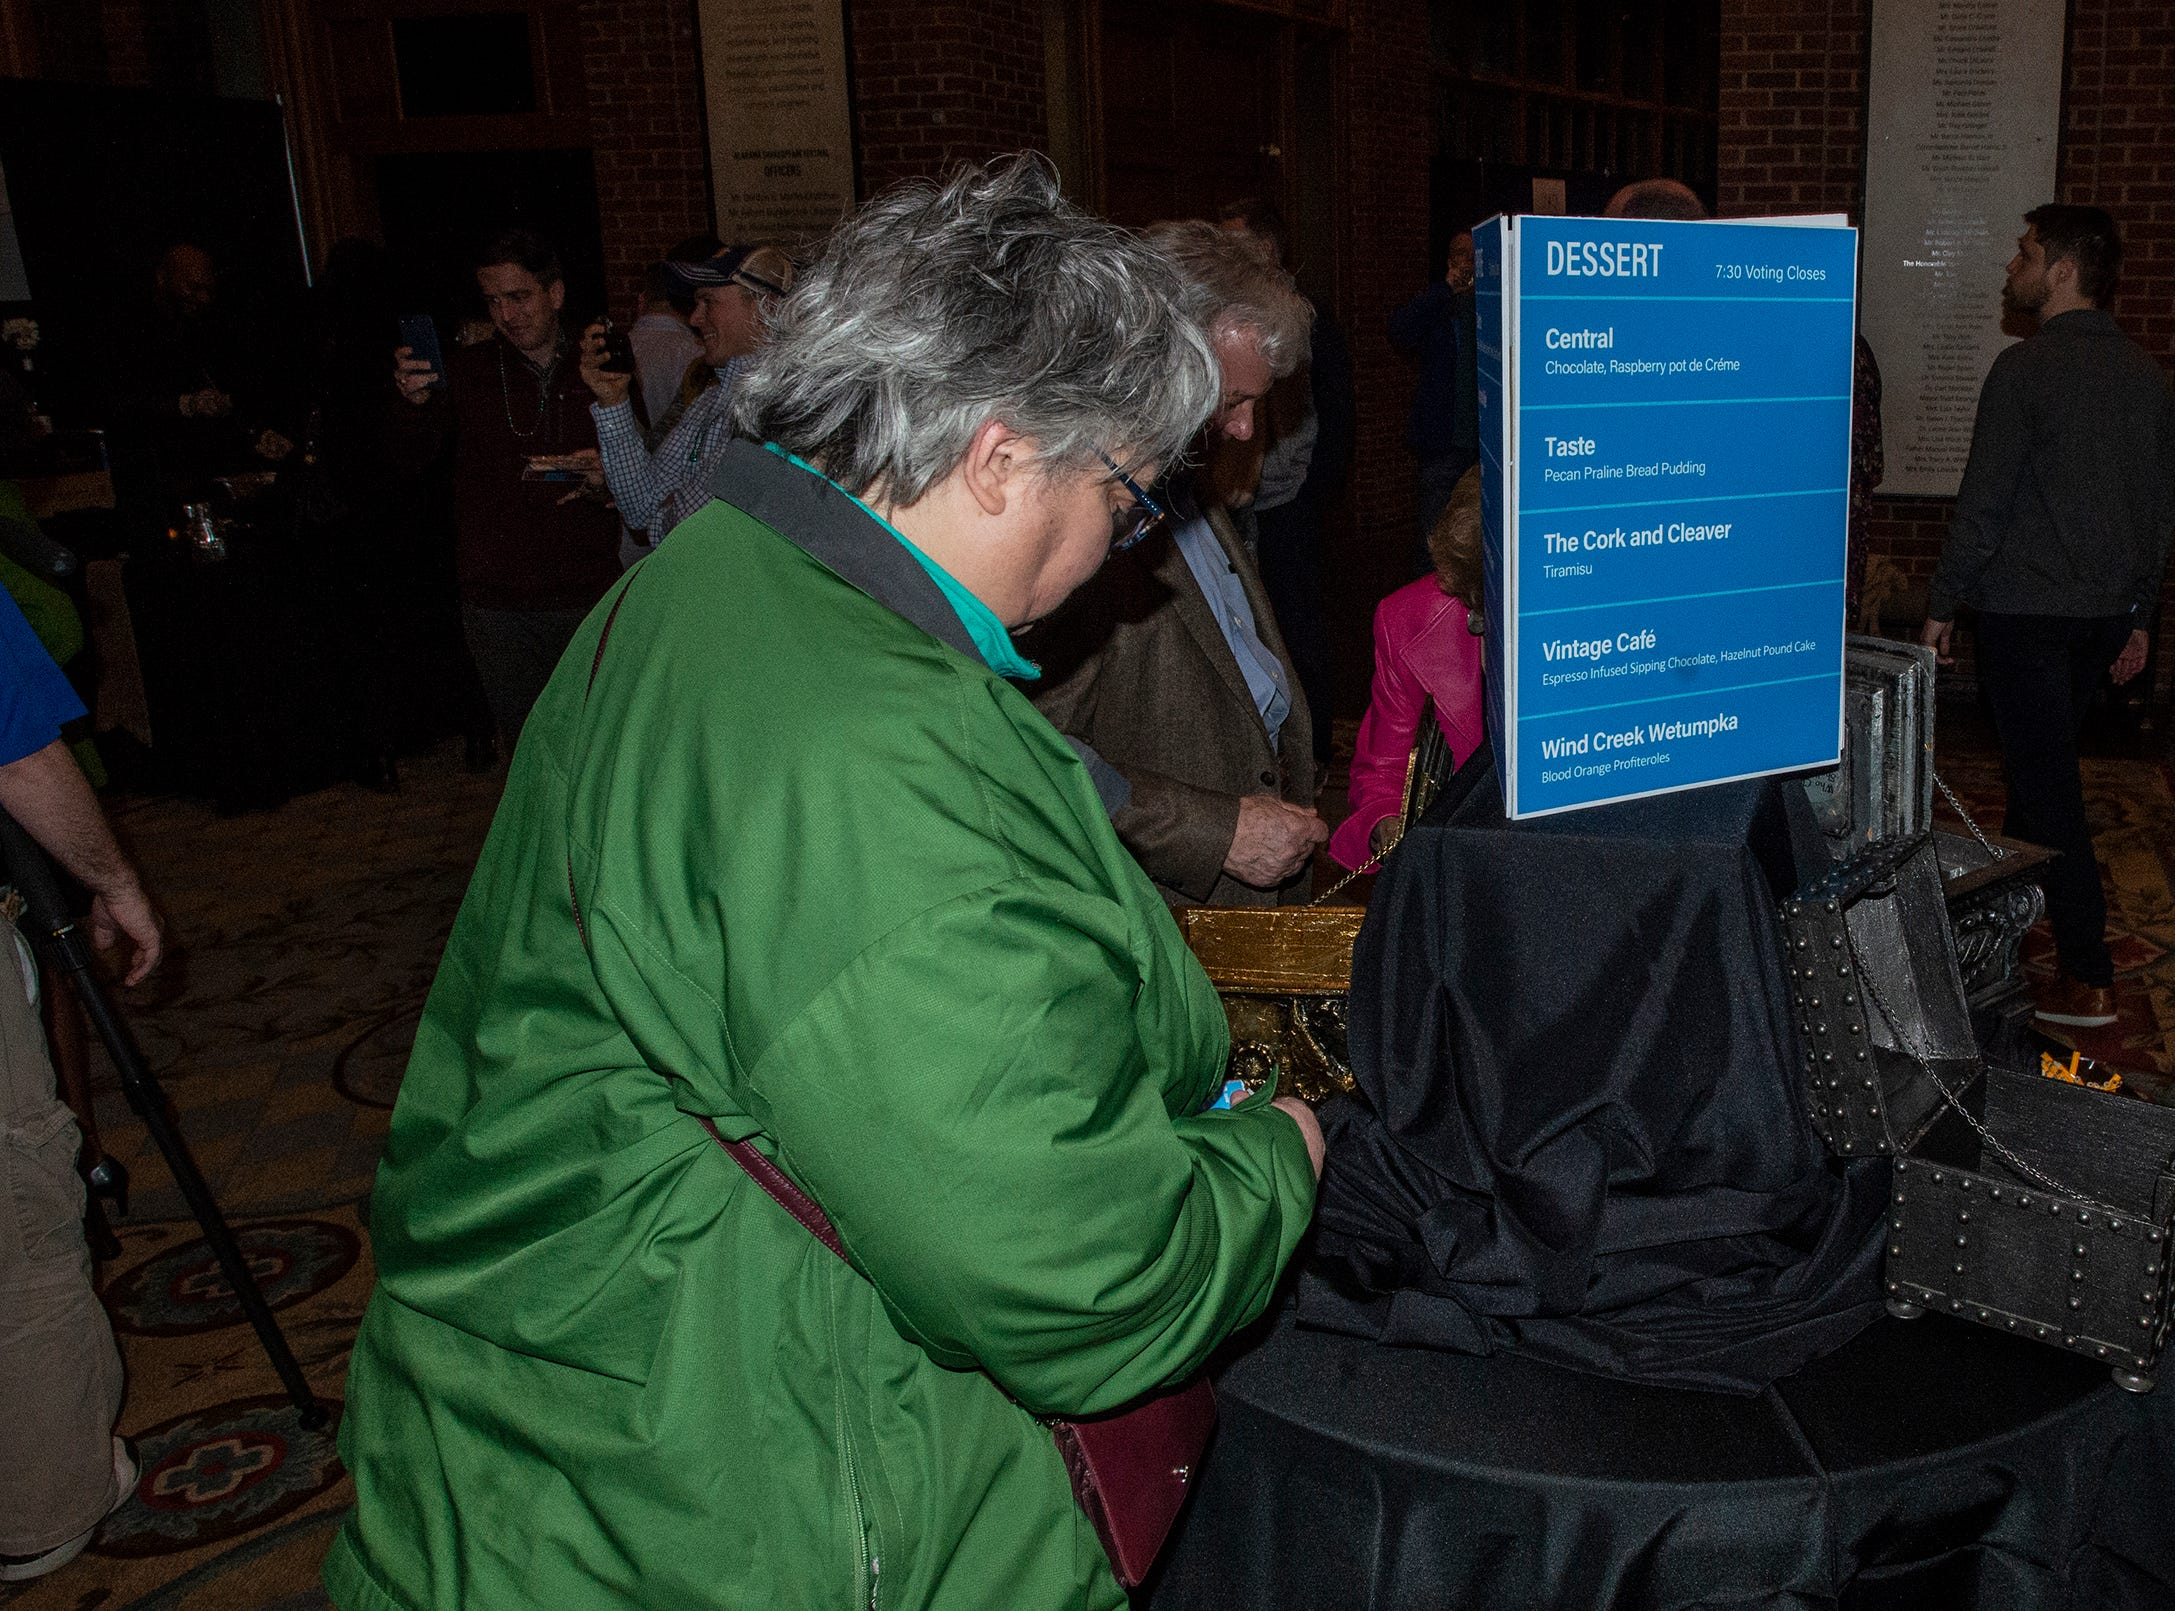 Guests vote for their favorite foods and drinks. The annual Feast of Flavours was held Monday, Jan. 28, 2019, at Alabama Shakespeare Festival in Montgomery.